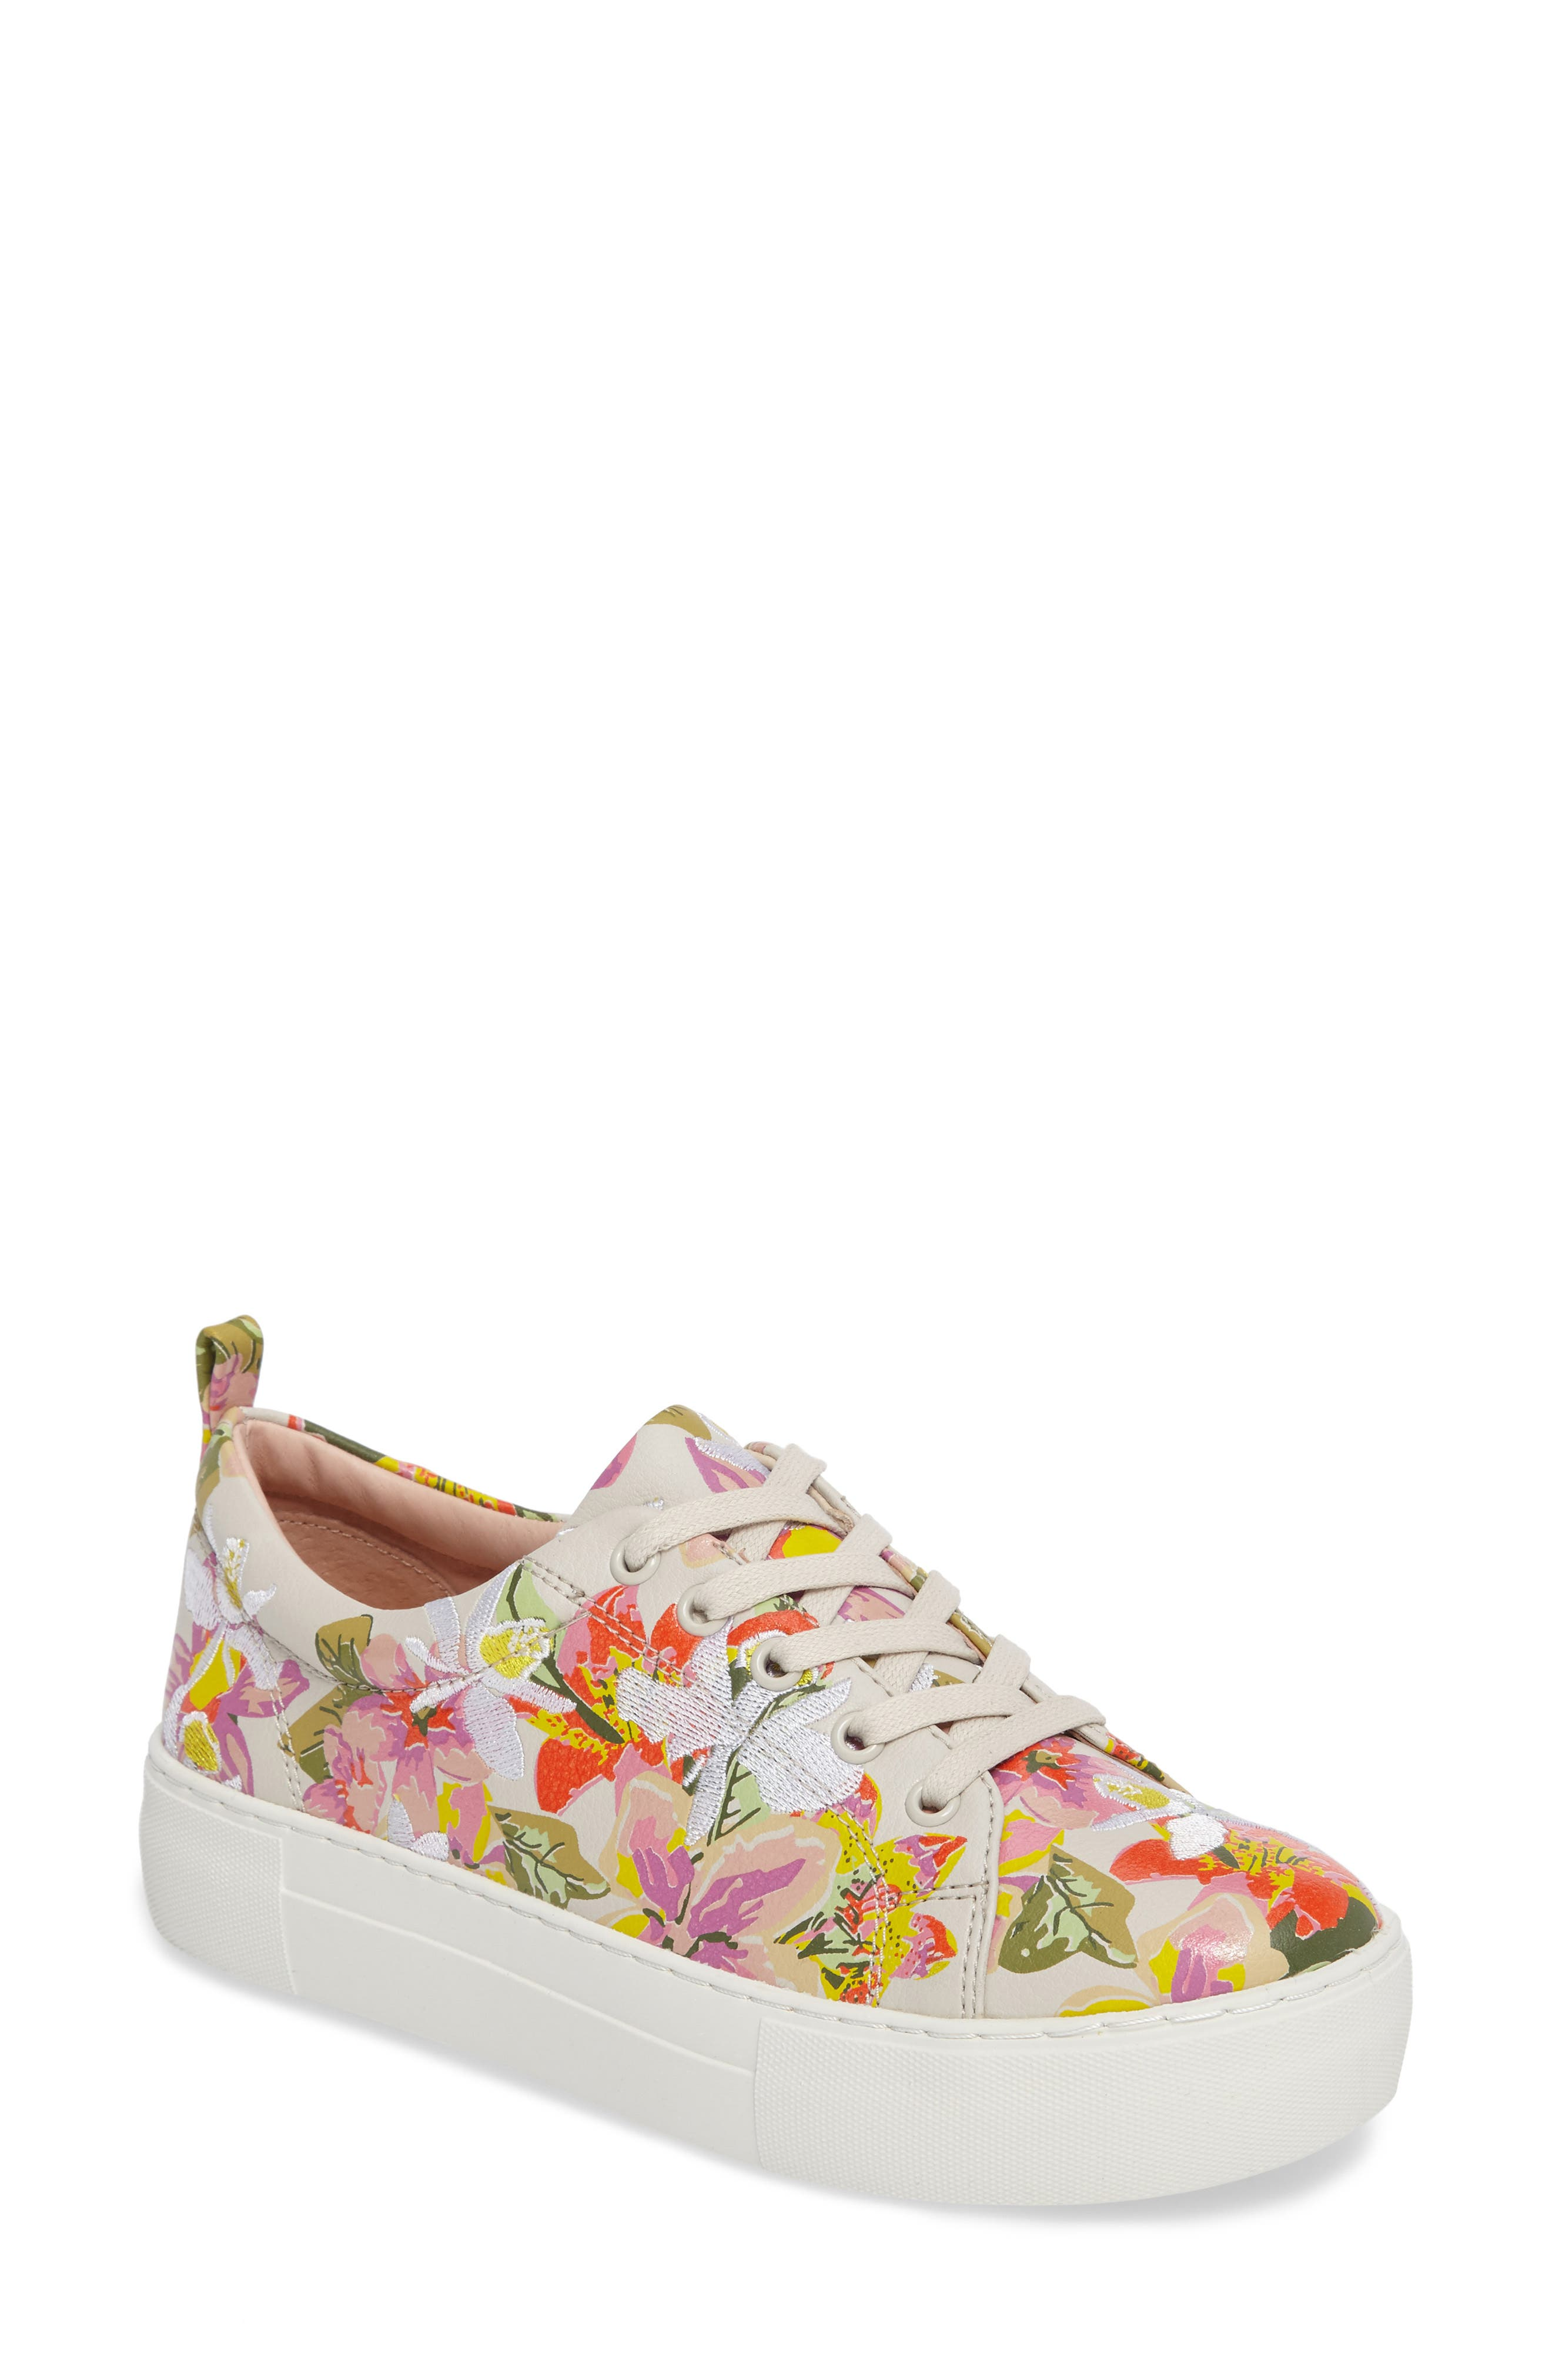 Appy Embroidered Platform Sneaker,                             Main thumbnail 1, color,                             Pink Multi Fabric